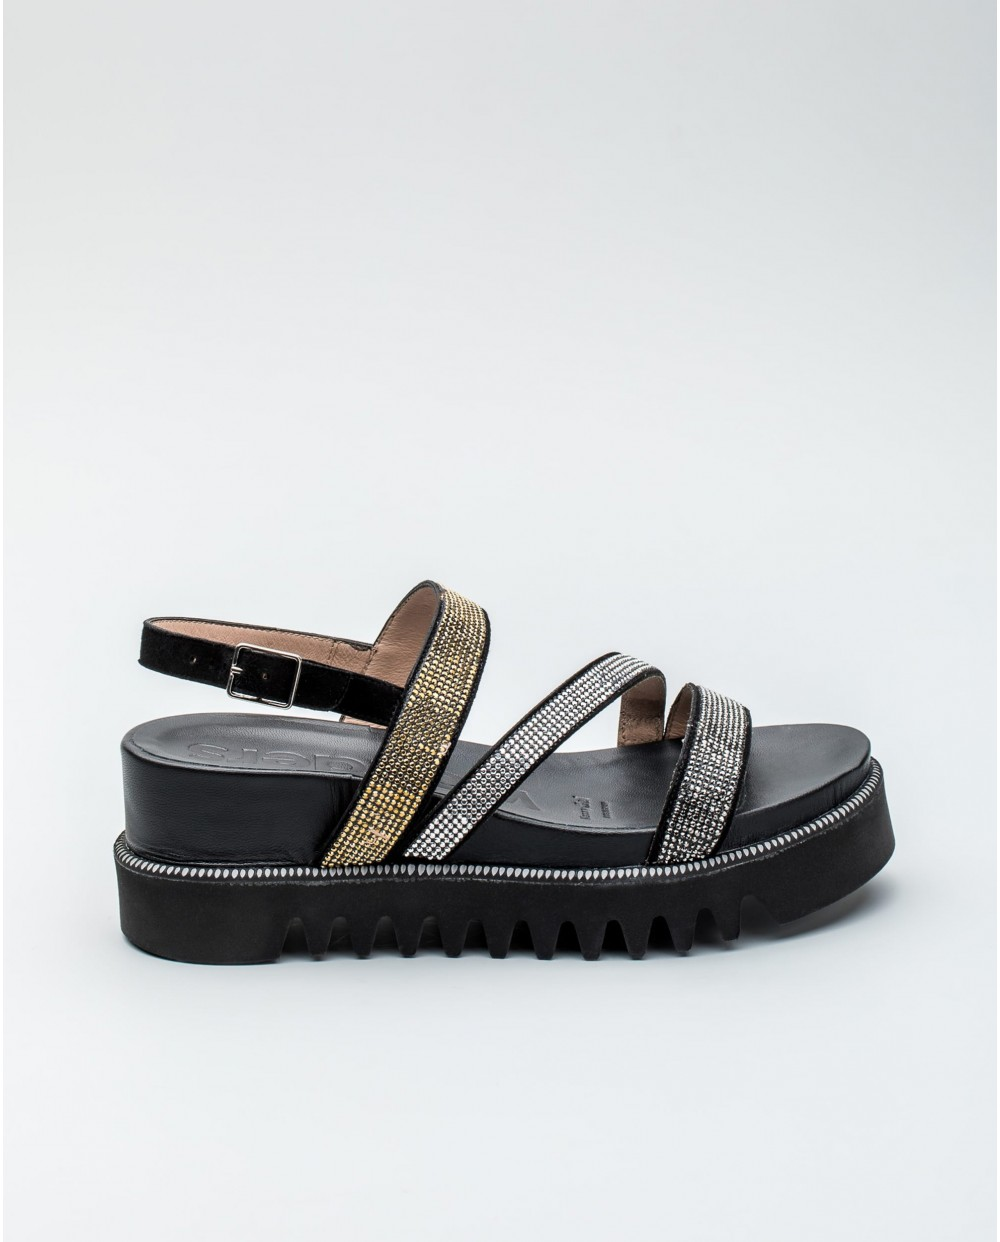 Wonders-Outlet Women-Loafer with inlaid detail